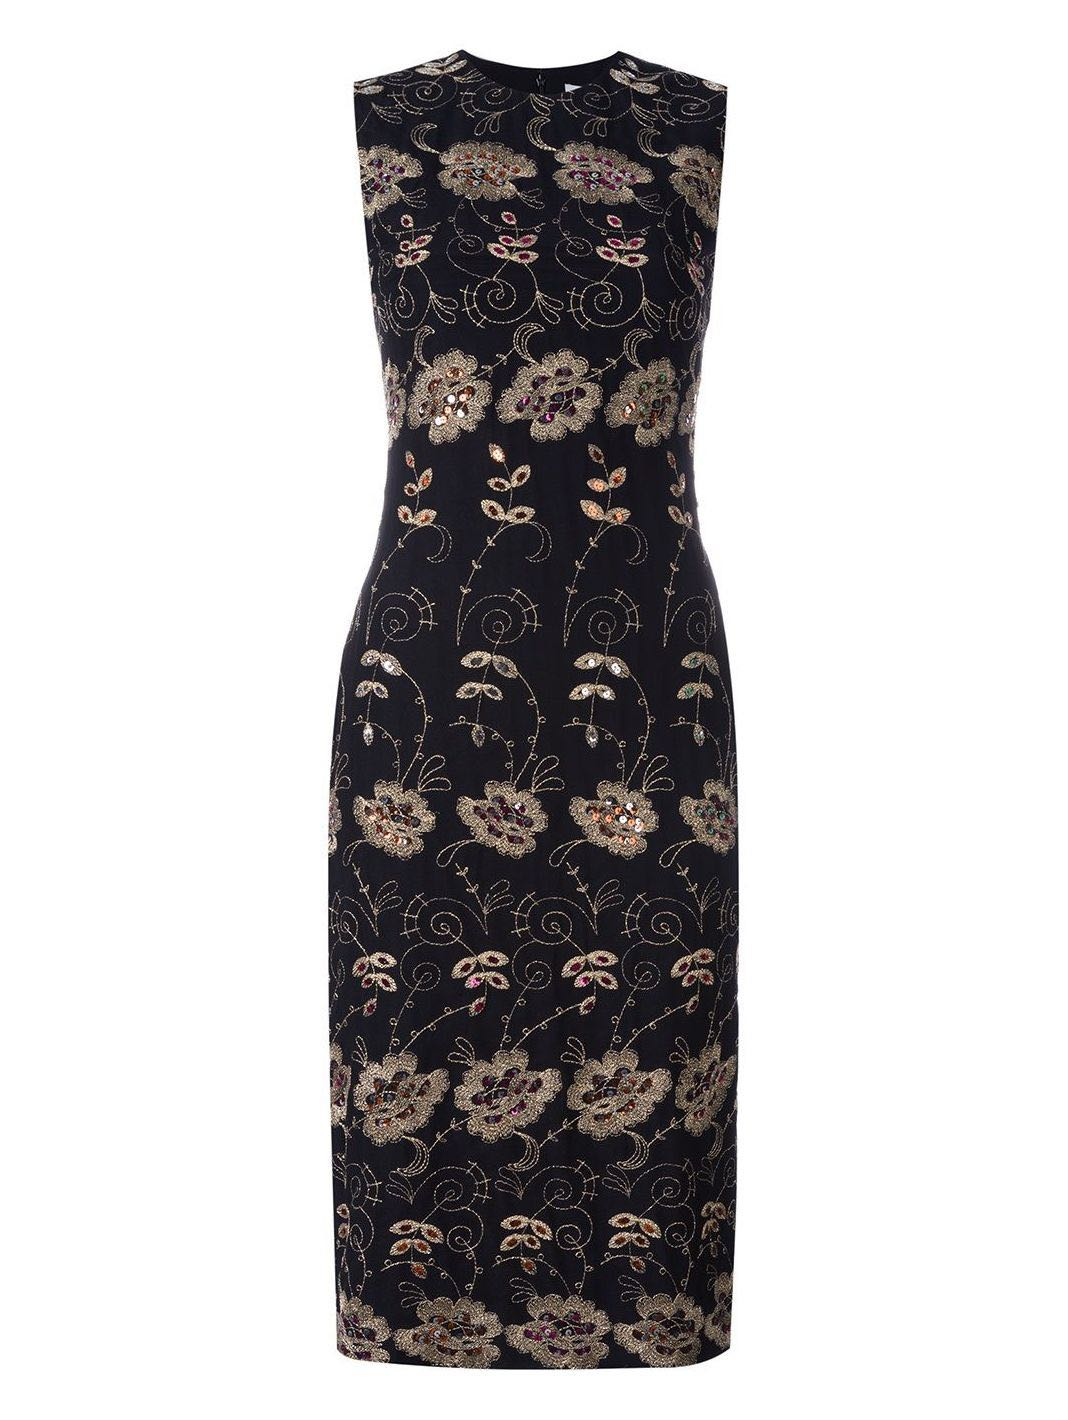 Floral Embroidered Sheath Dress - The Bobby Boga